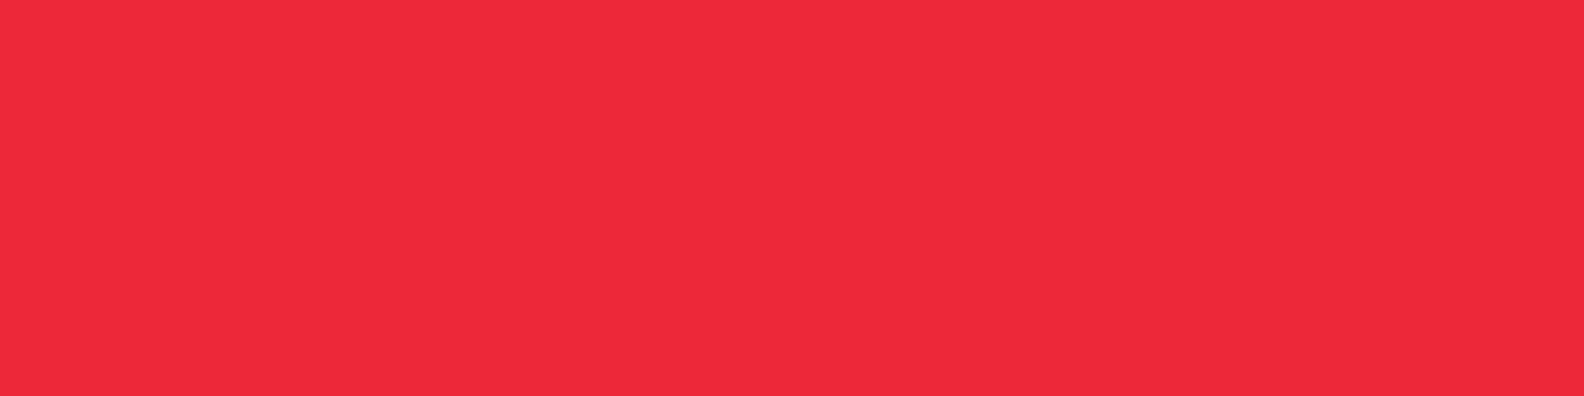 1584x396 Imperial Red Solid Color Background